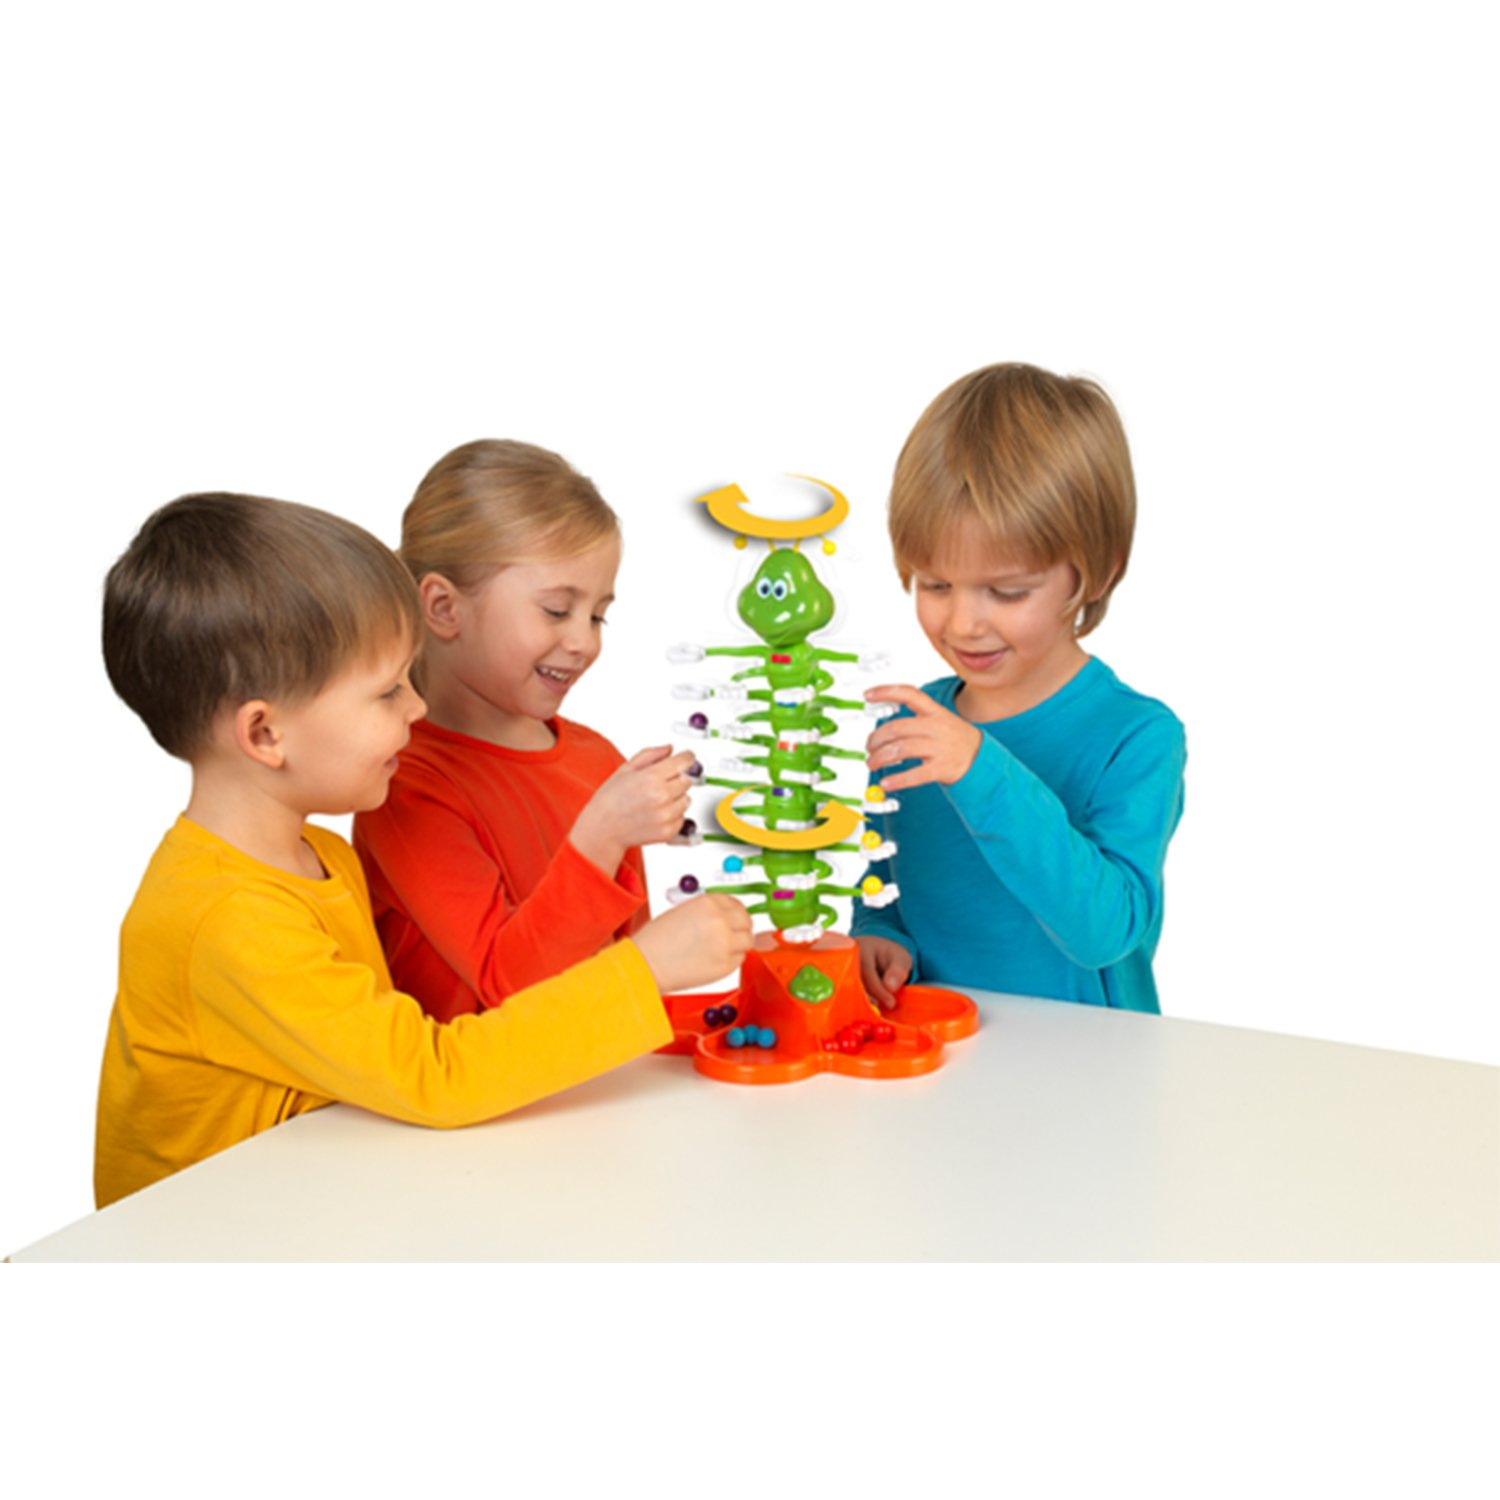 Amazon Giggle Wiggle Game 4 Player Toys & Games